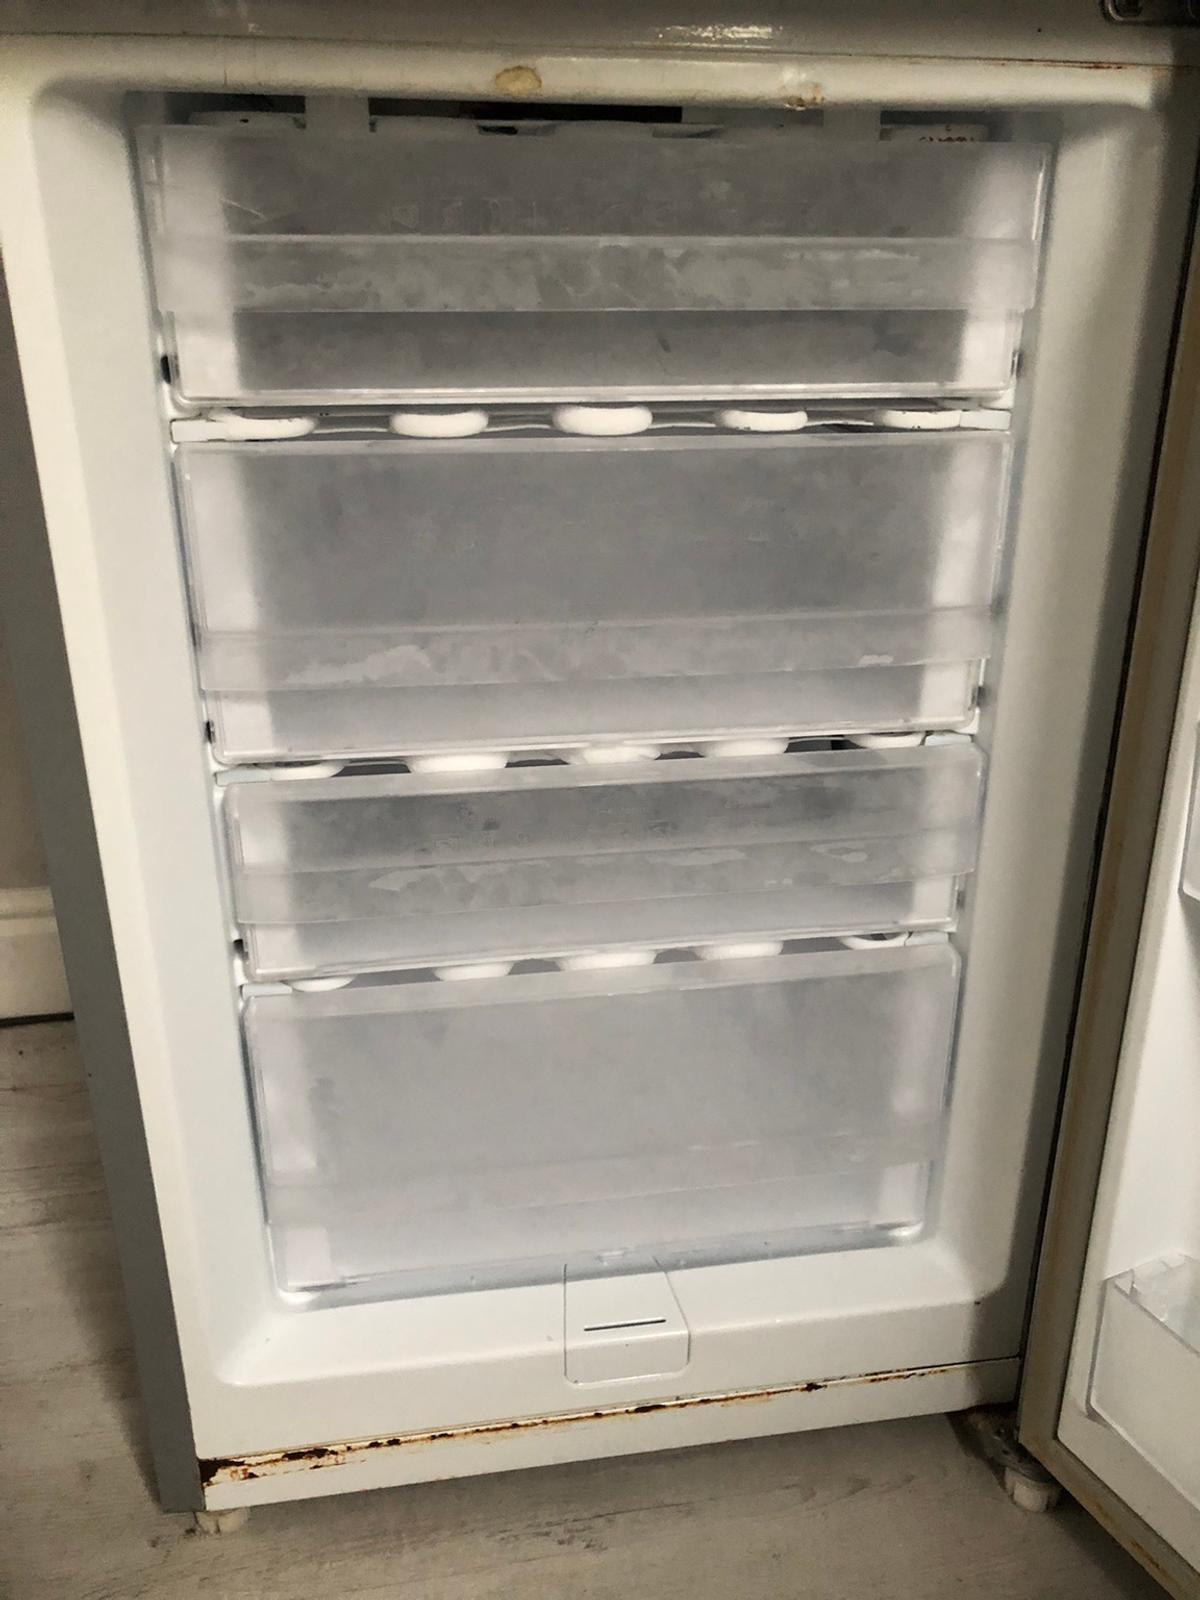 Used Samsung Grey fridge freezer £40  Outside visually in great condition, inside see pictures - does not affect use. Top tray of the freezer one side of the clips are broken.  Selling due to moving into home with built in one.  Collection only, Chester road (Boldmere) Will be defrosted the 17th and available for collection 17th-21st Jan (unless specially requested otherwise)